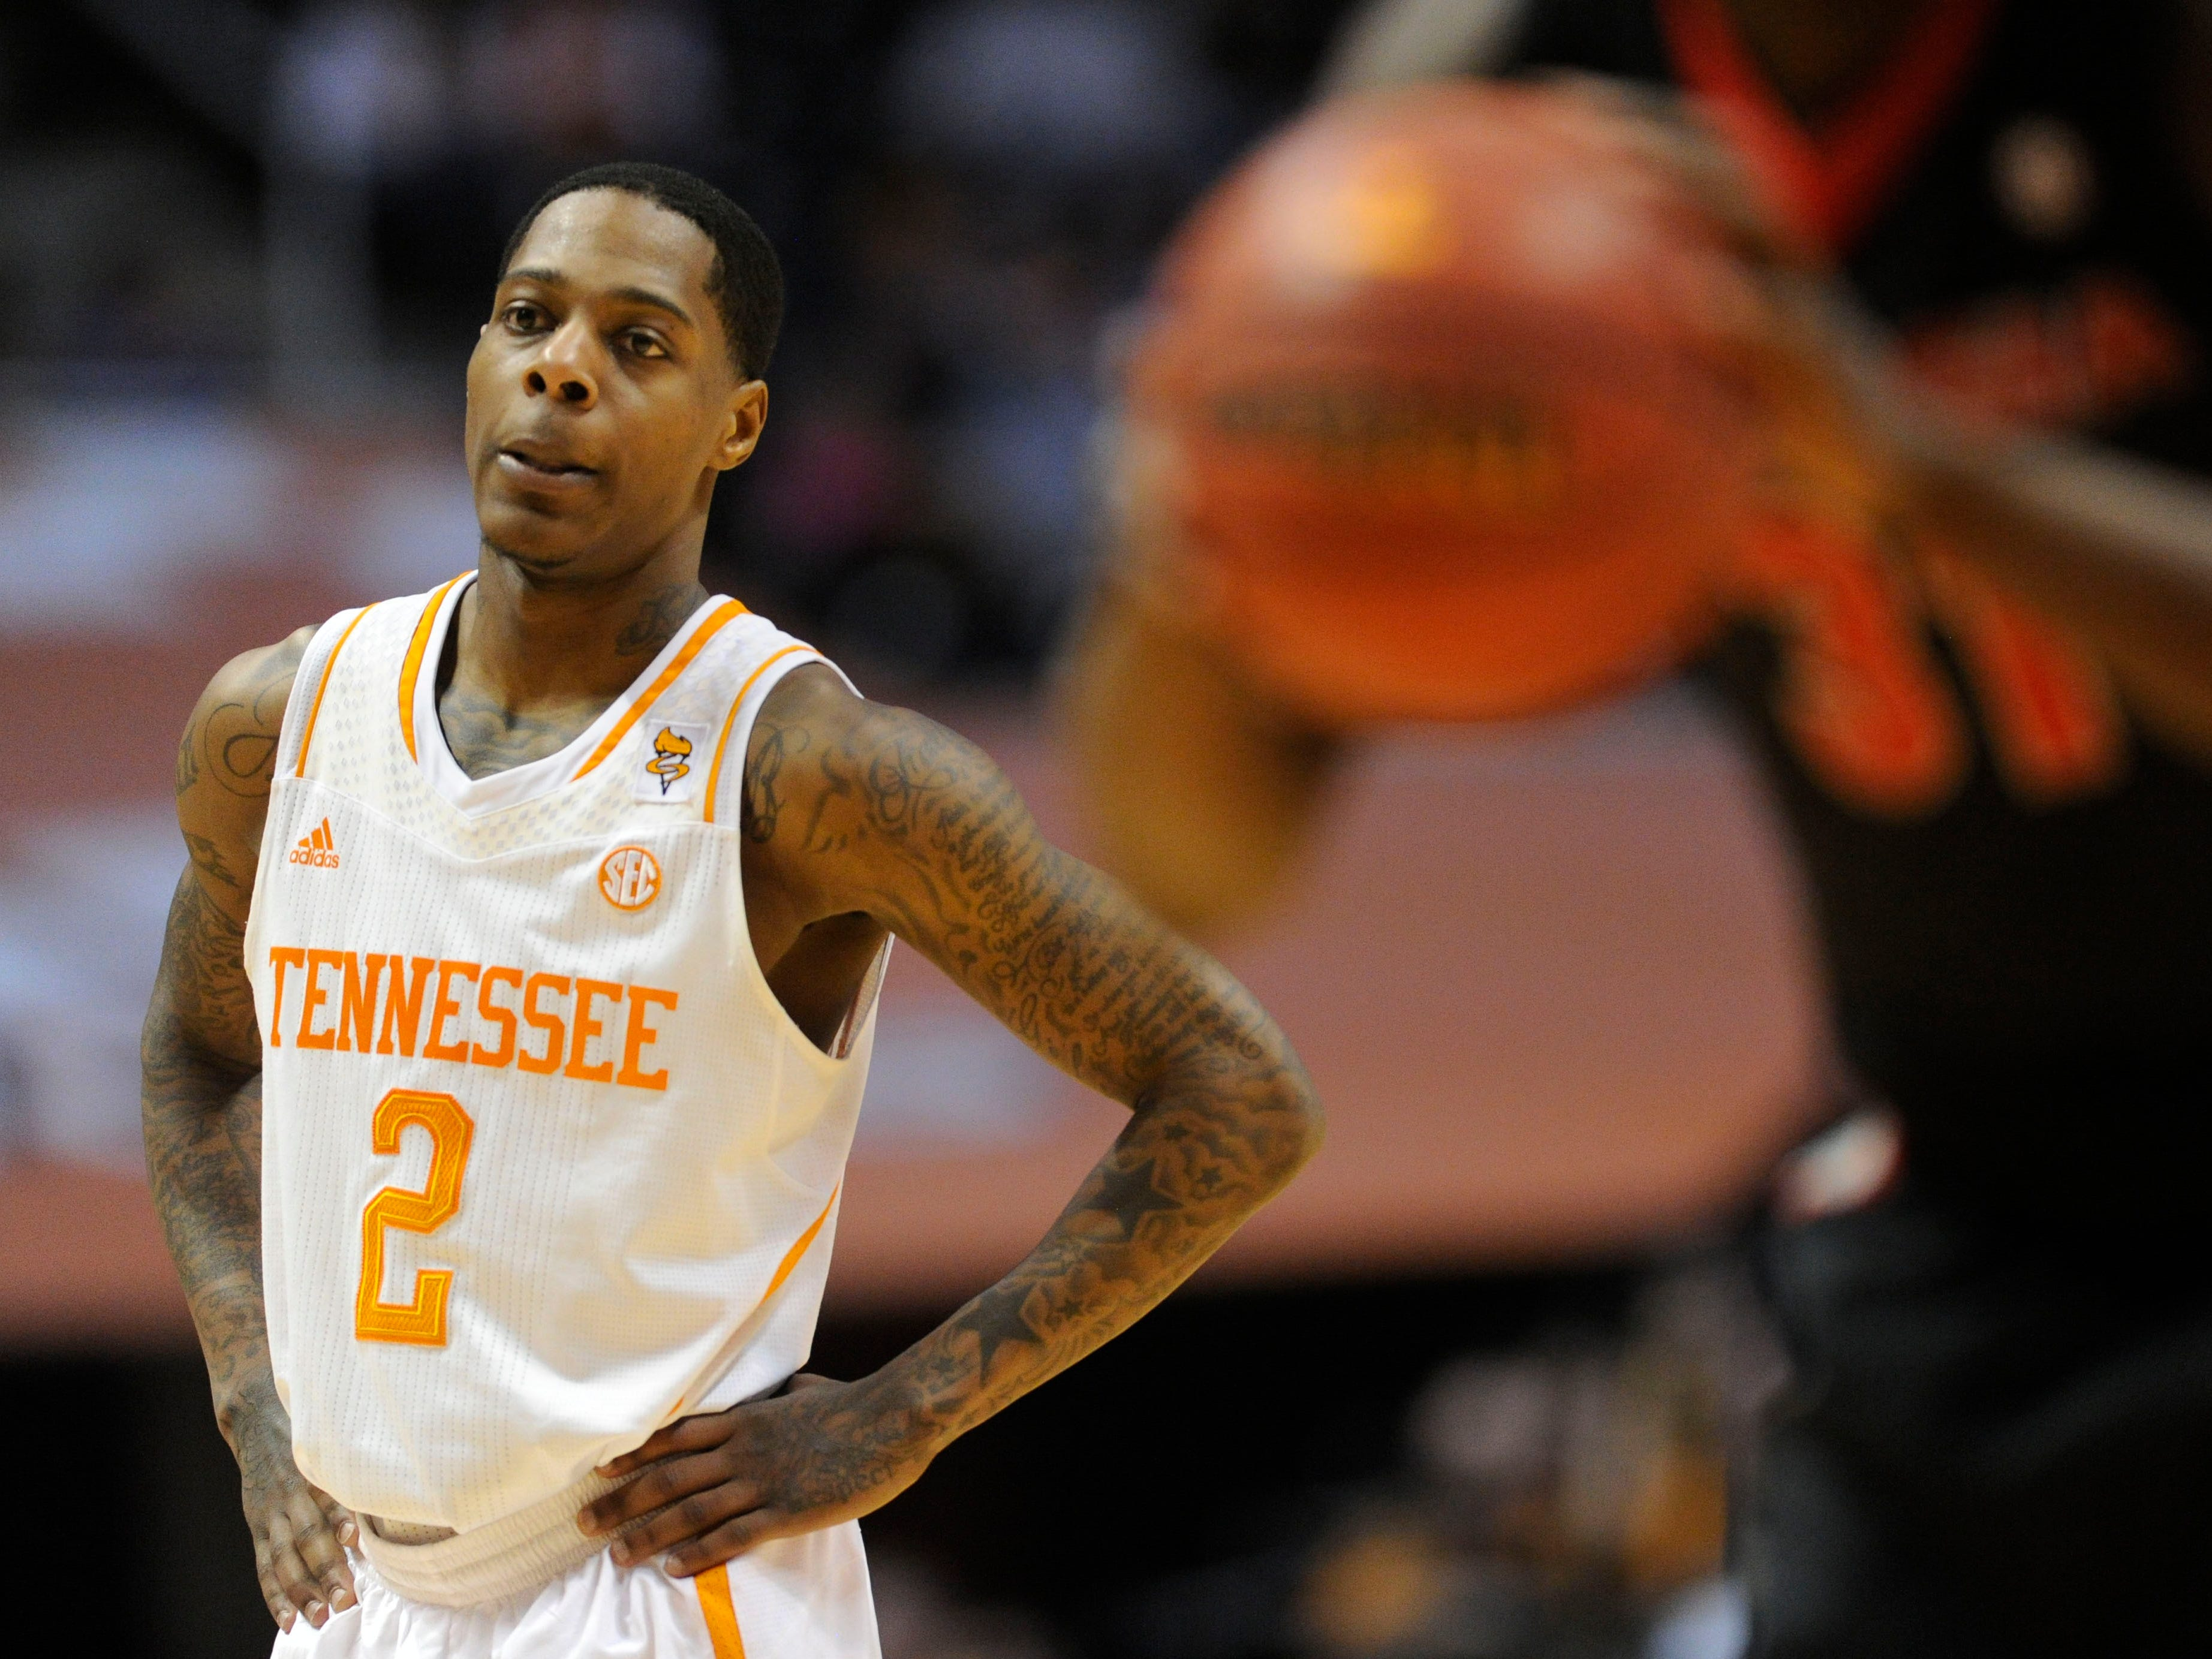 Tennessee guard Antonio Barton (2) looks on as Georgia shoots a free-throw during the second half at the Thompson-Boling Arena in Knoxville on Tuesday, Feb. 18, 2014. Tennessee defeated Georgia 67-48.